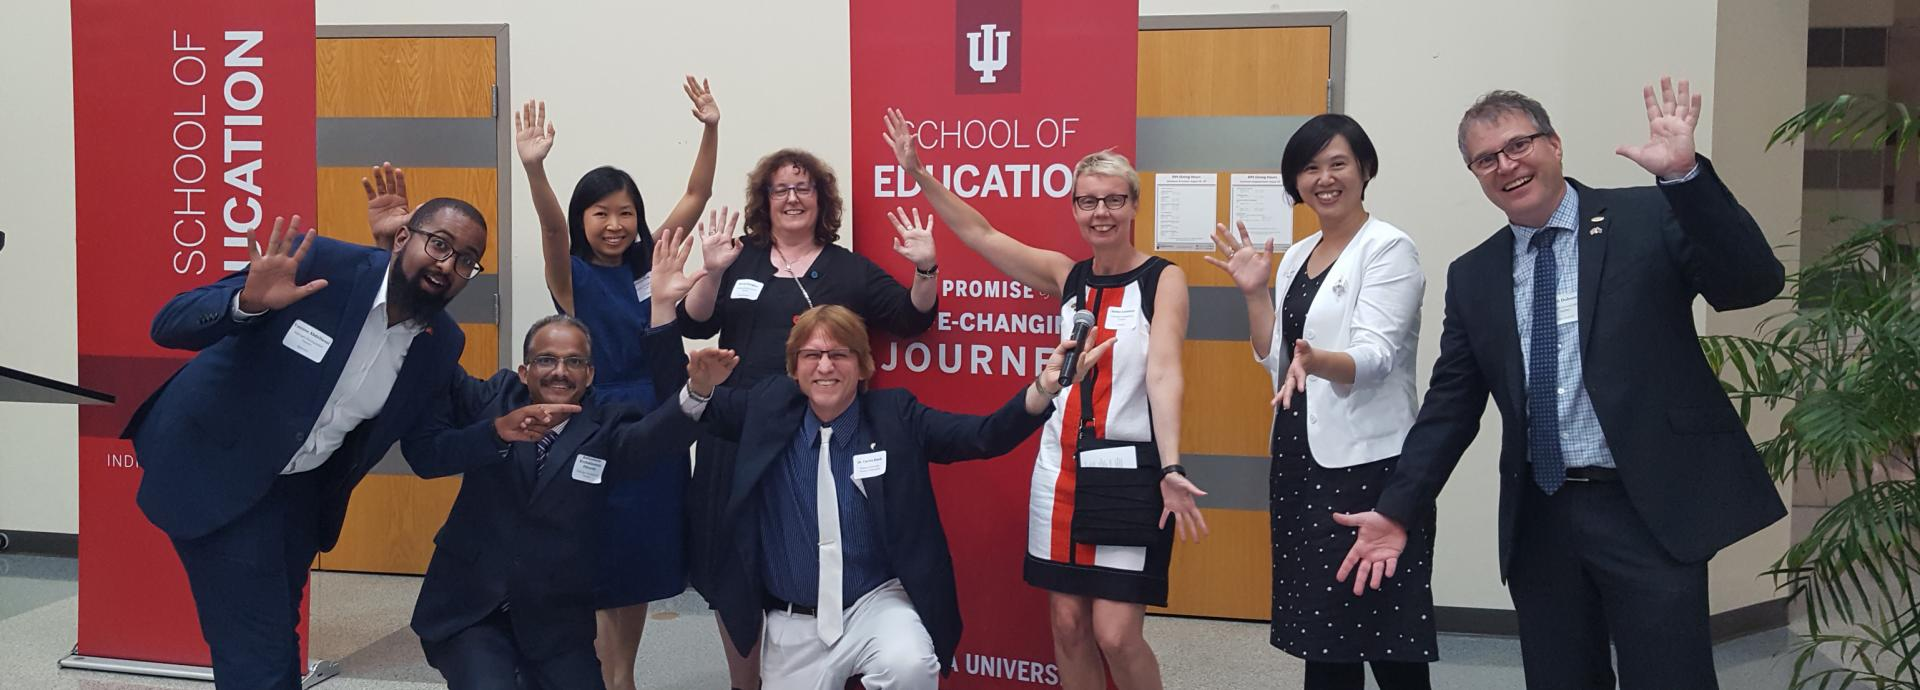 Fulbright Distinguished Awards in Teaching Grantees at Indiana University School of Education